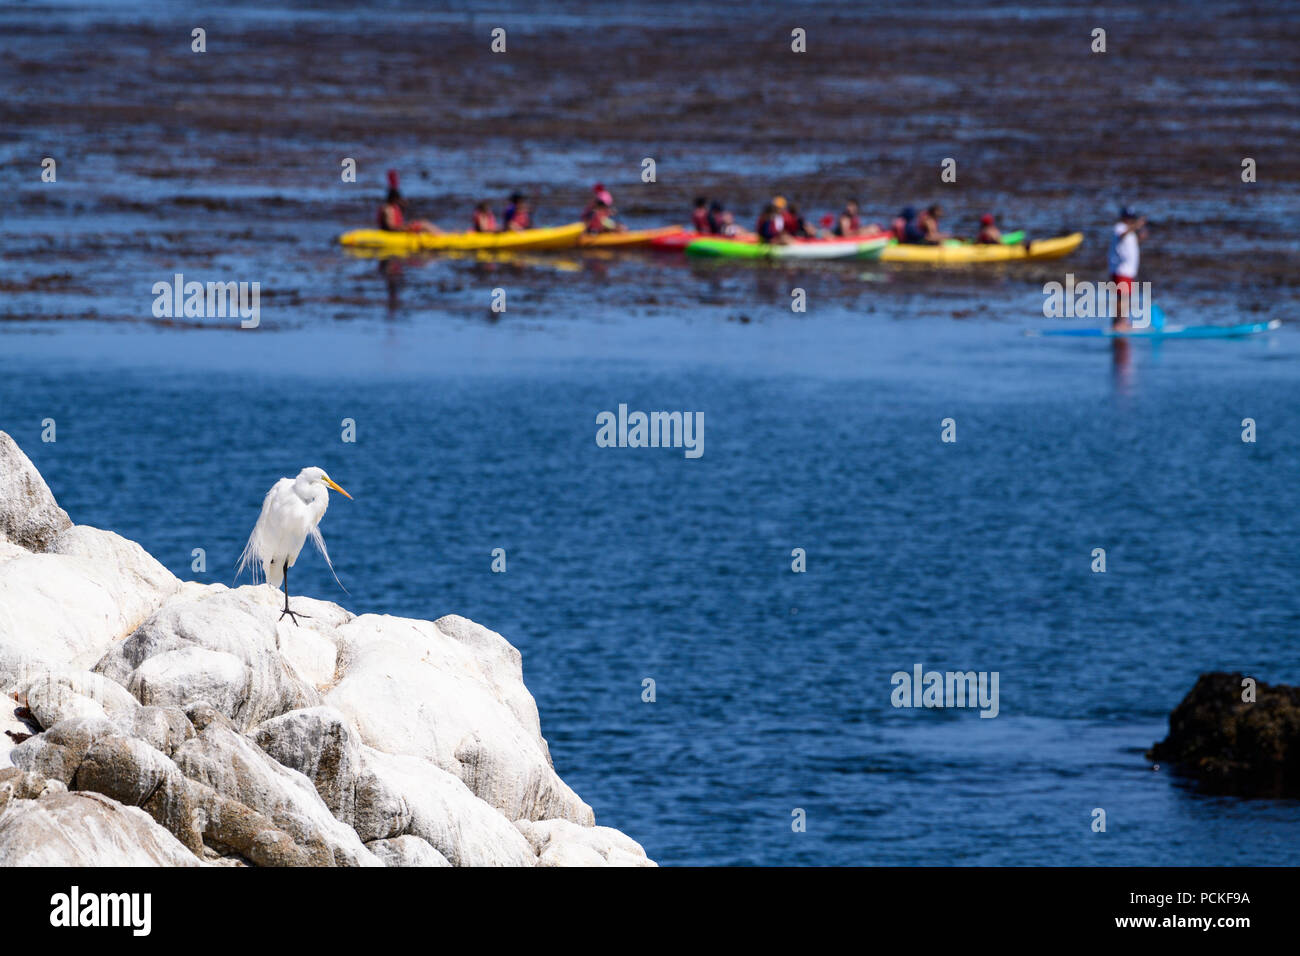 A Great Egret watches one of the kayak tours are a popular tourist activity in the Pacific Ocean along the coast of Pacific Grove and Monterey. - Stock Image